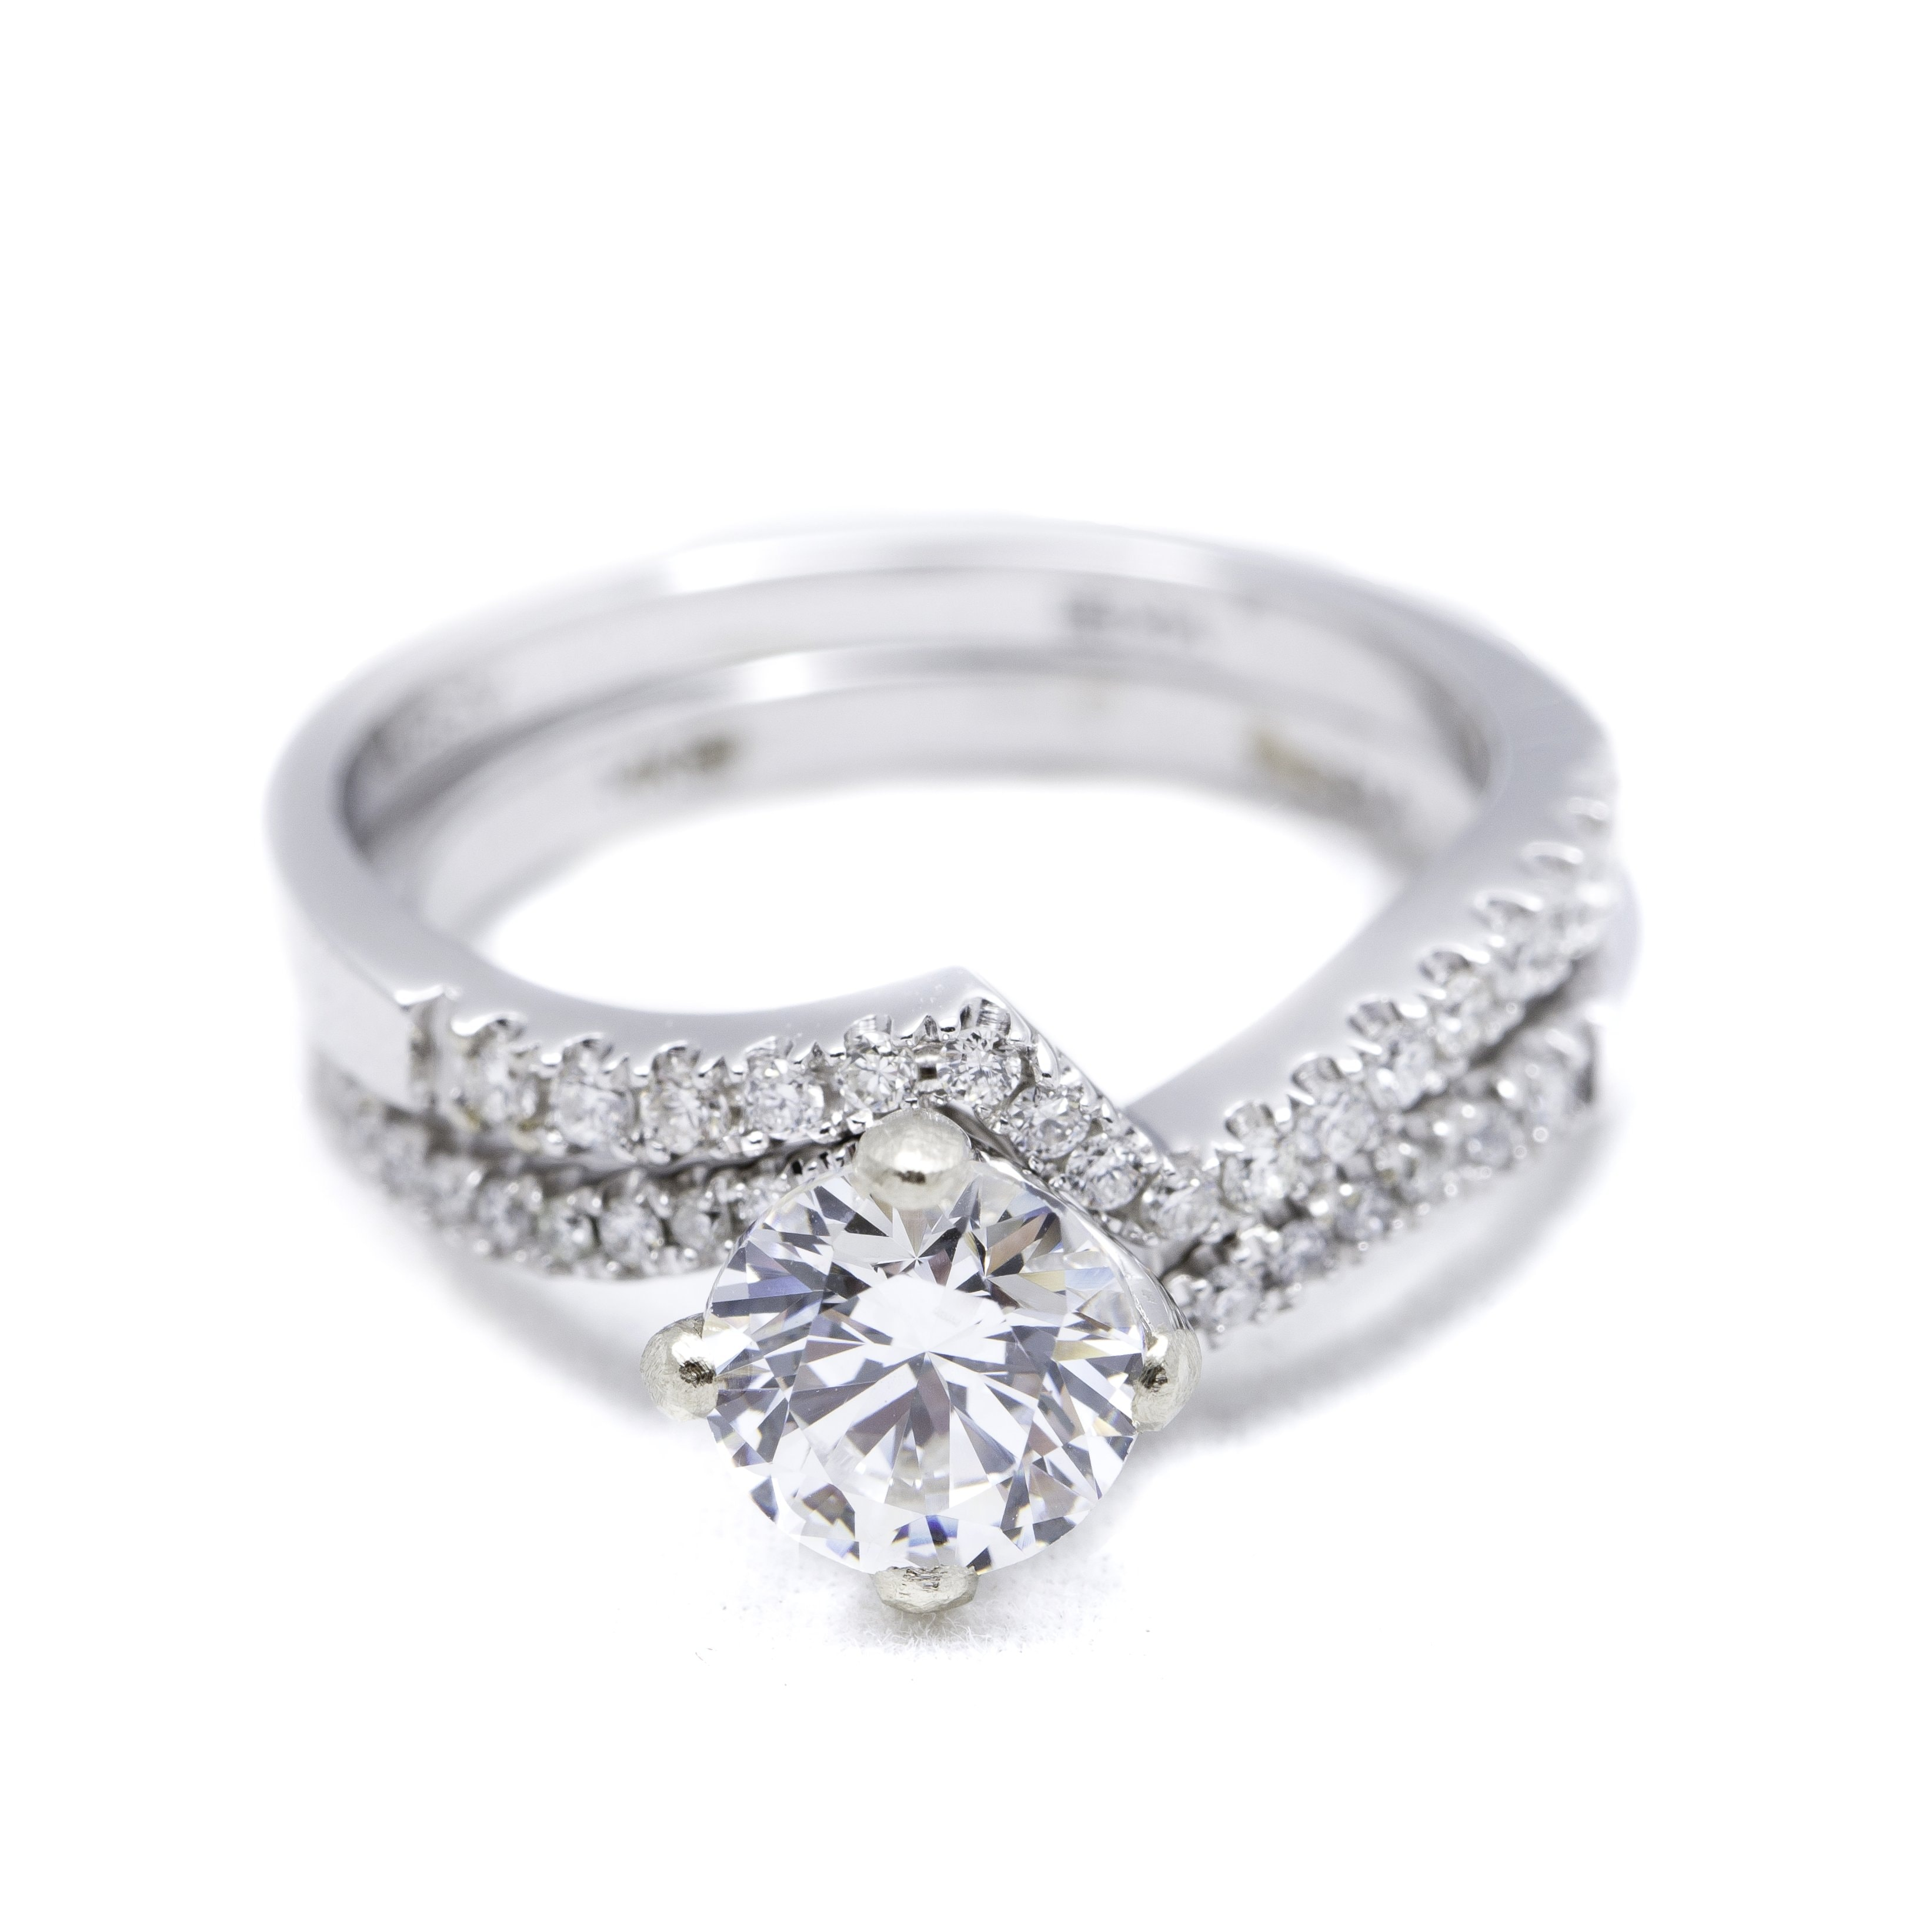 It is a photo of WHITE GOLD DIAMOND RING MOUNTING AND WEDDING RING SET